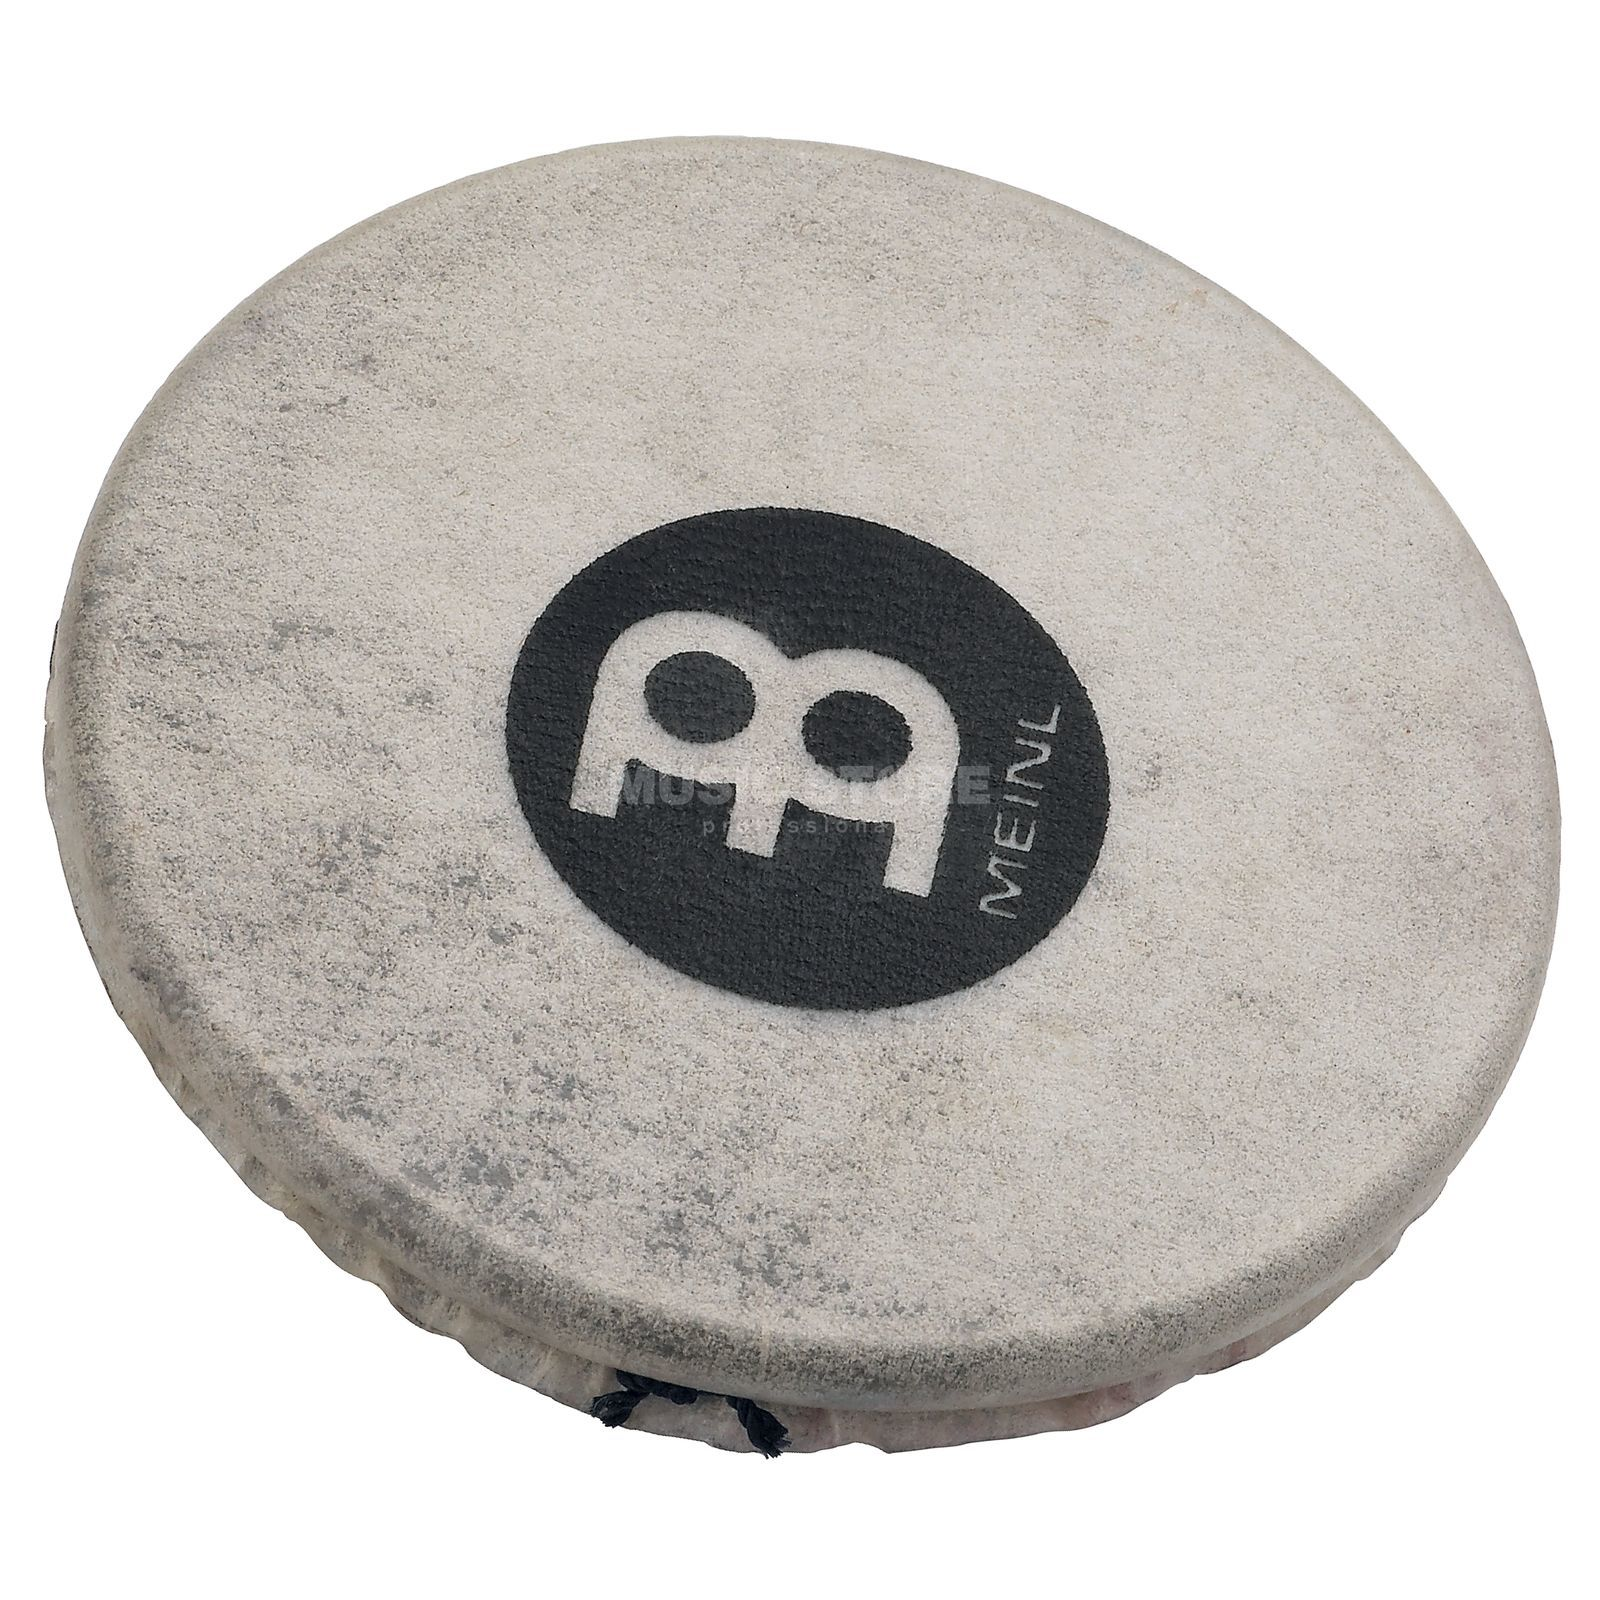 Meinl SH18 Headed Spark Shaker Medium Zdjęcie produktu